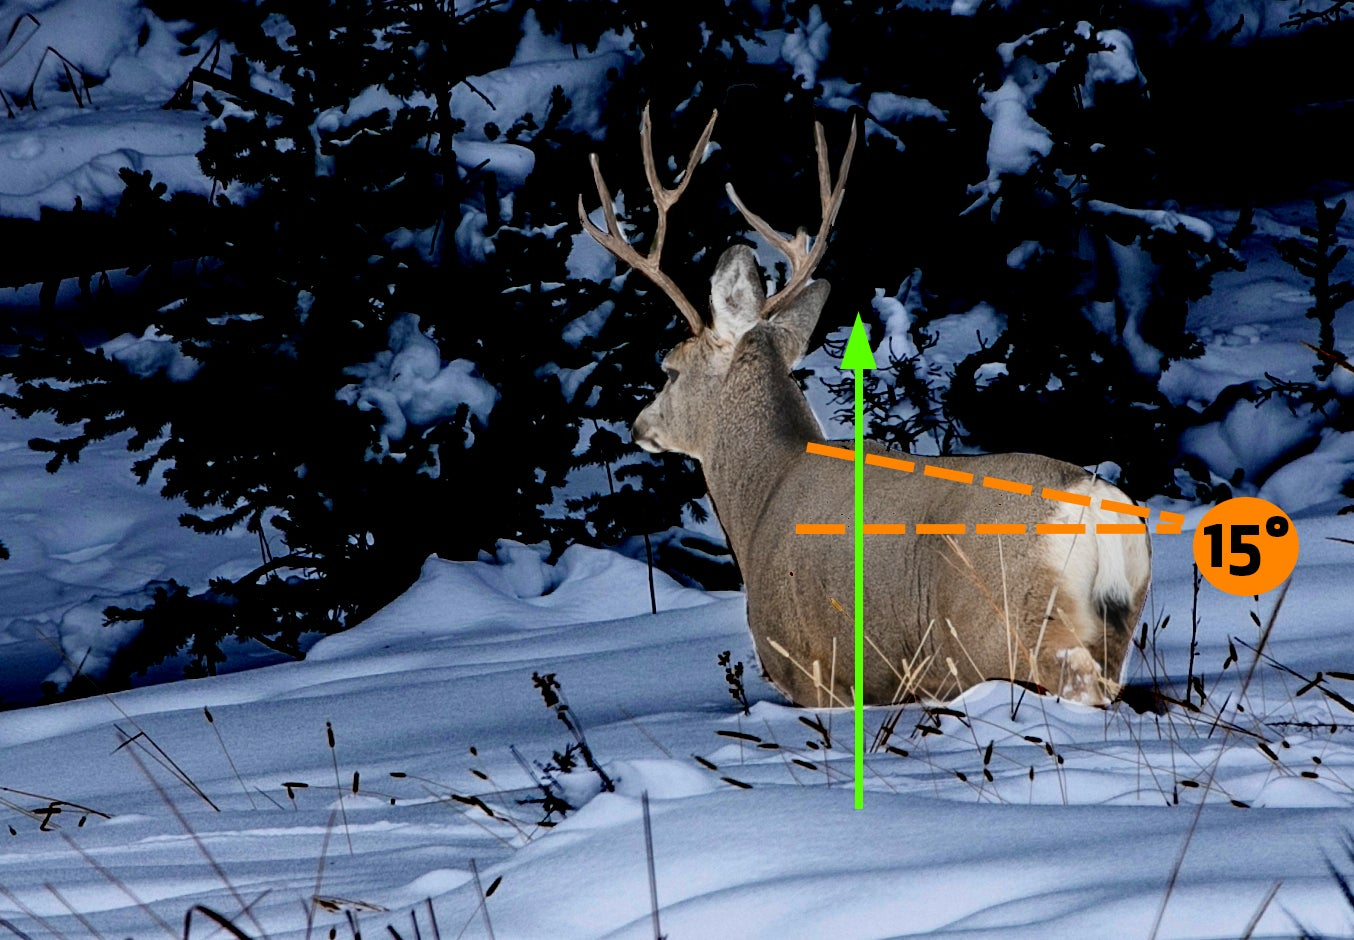 The difference between an entry wound and exit wound when considering shot placement on a mule deer.